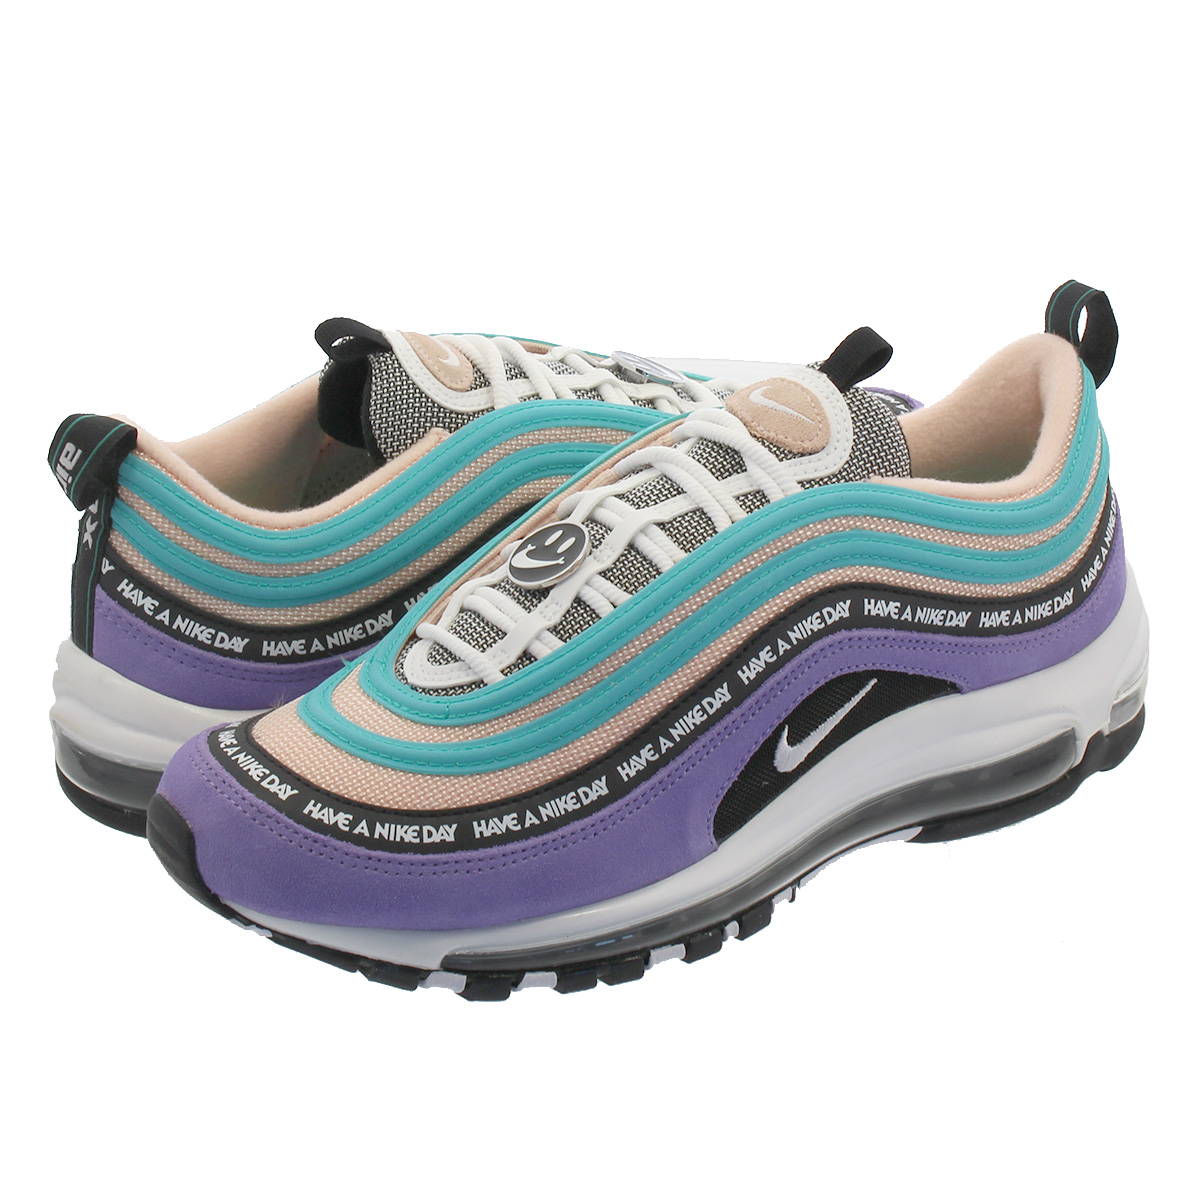 Nike Air Max 97 Have A Nike Day Shoes BQ9130 500